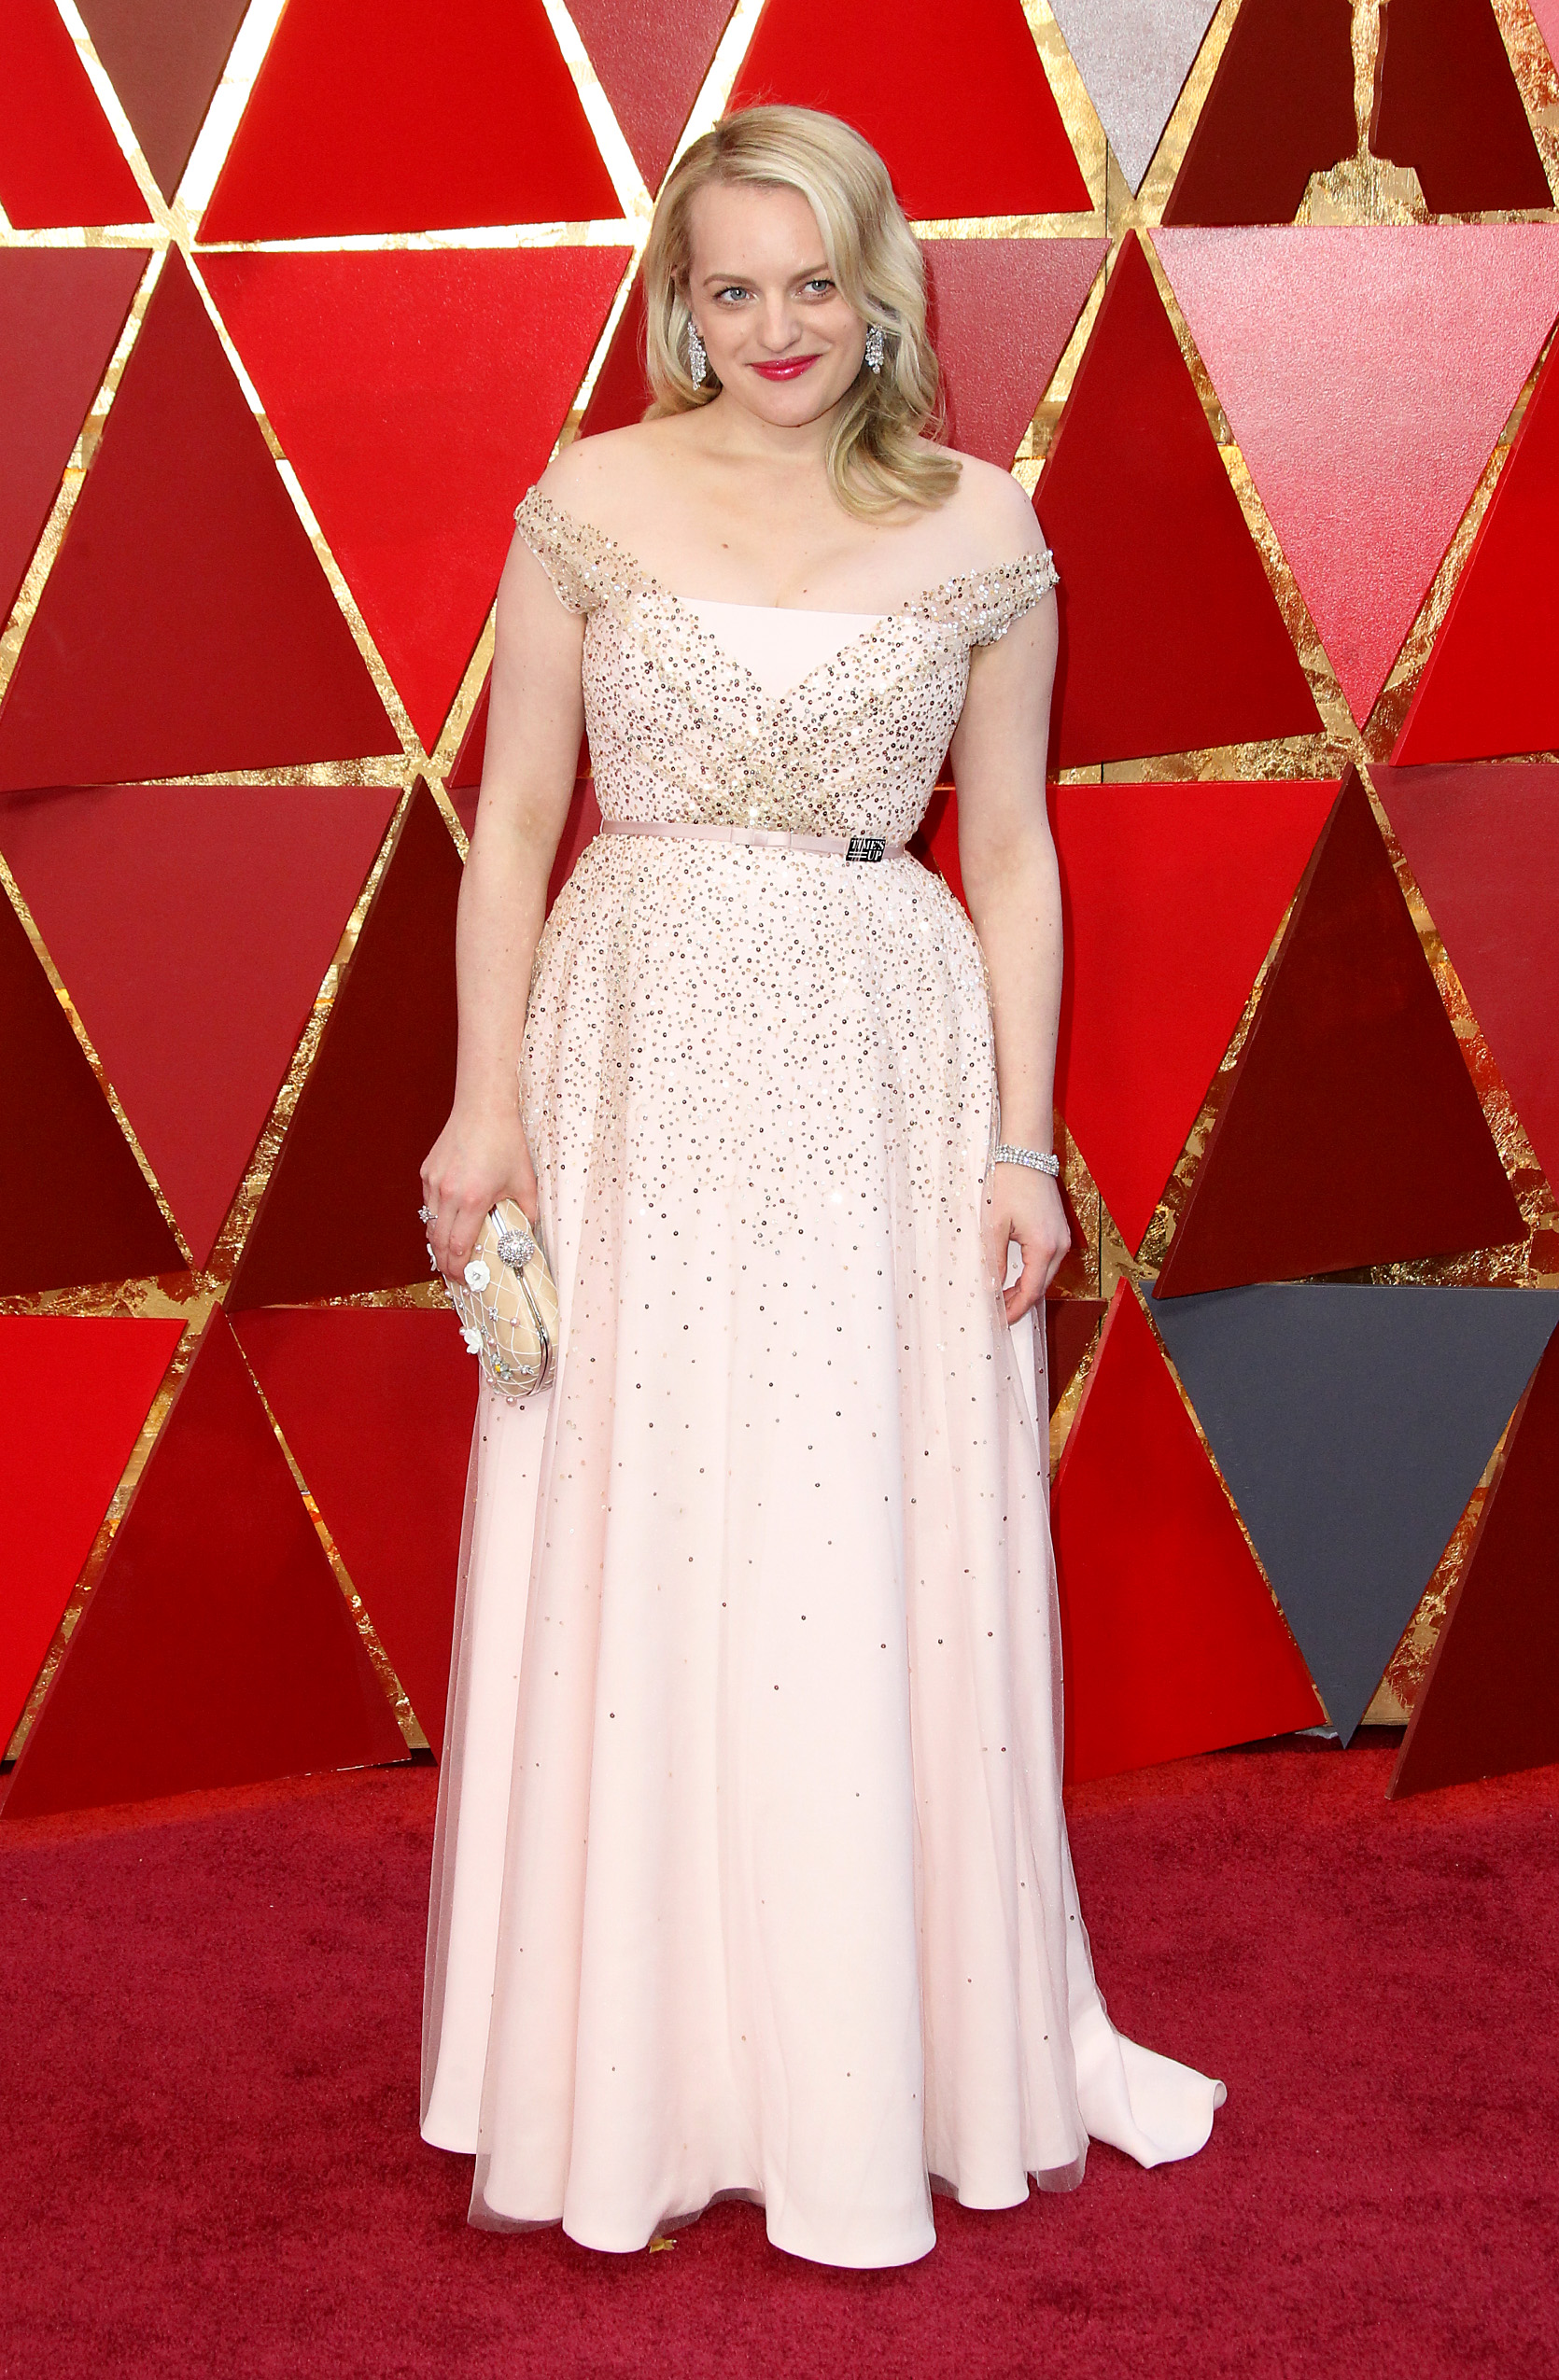 Elisabeth Moss{&amp;nbsp;}arrives at the 90th Annual Academy Awards (Oscars) held at the Dolby Theater in Hollywood, California. (Image: Adriana M. Barraza/WENN.com)<p></p>